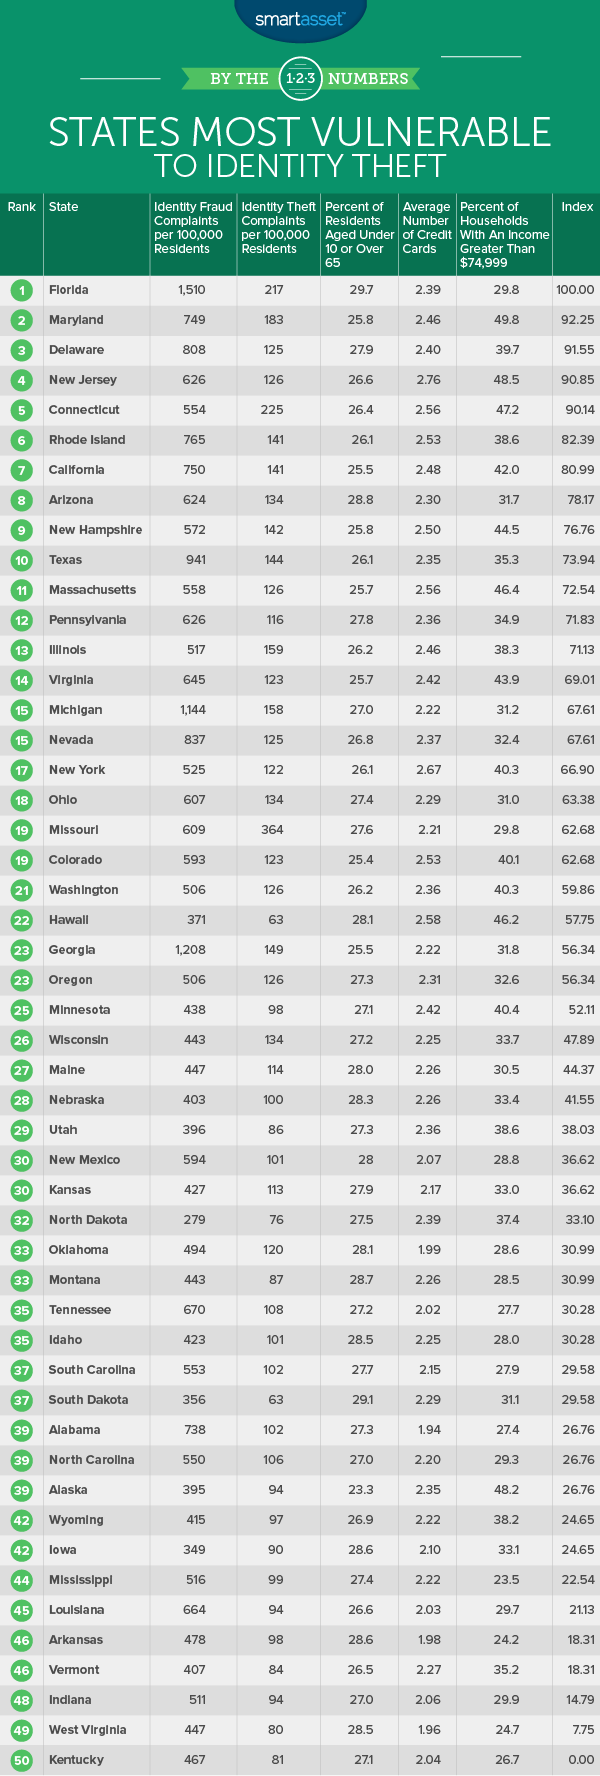 States Most Vulnerable to Identity Theft